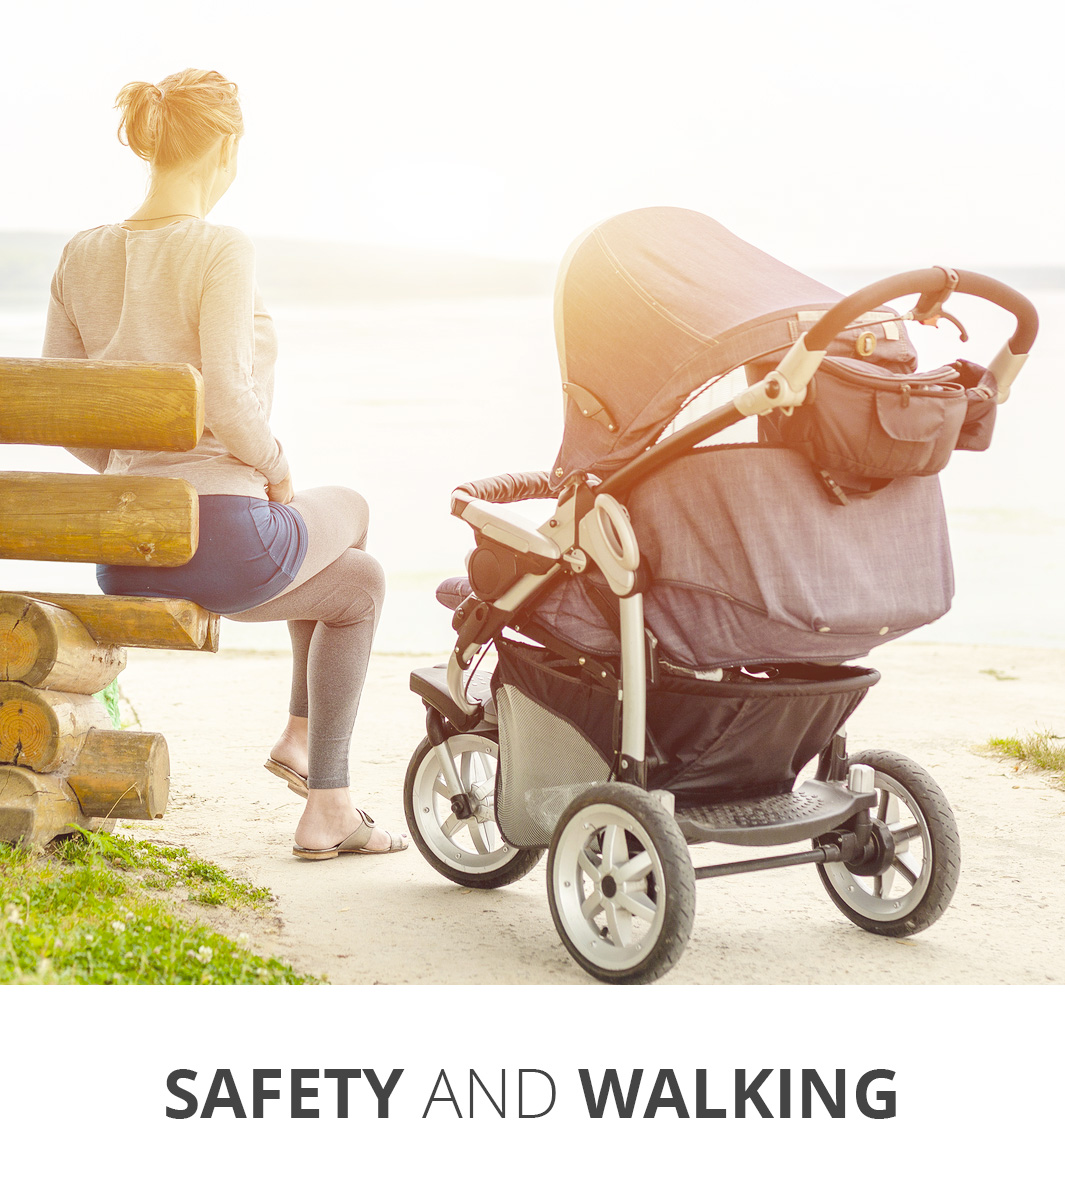 Safety walking and furniture